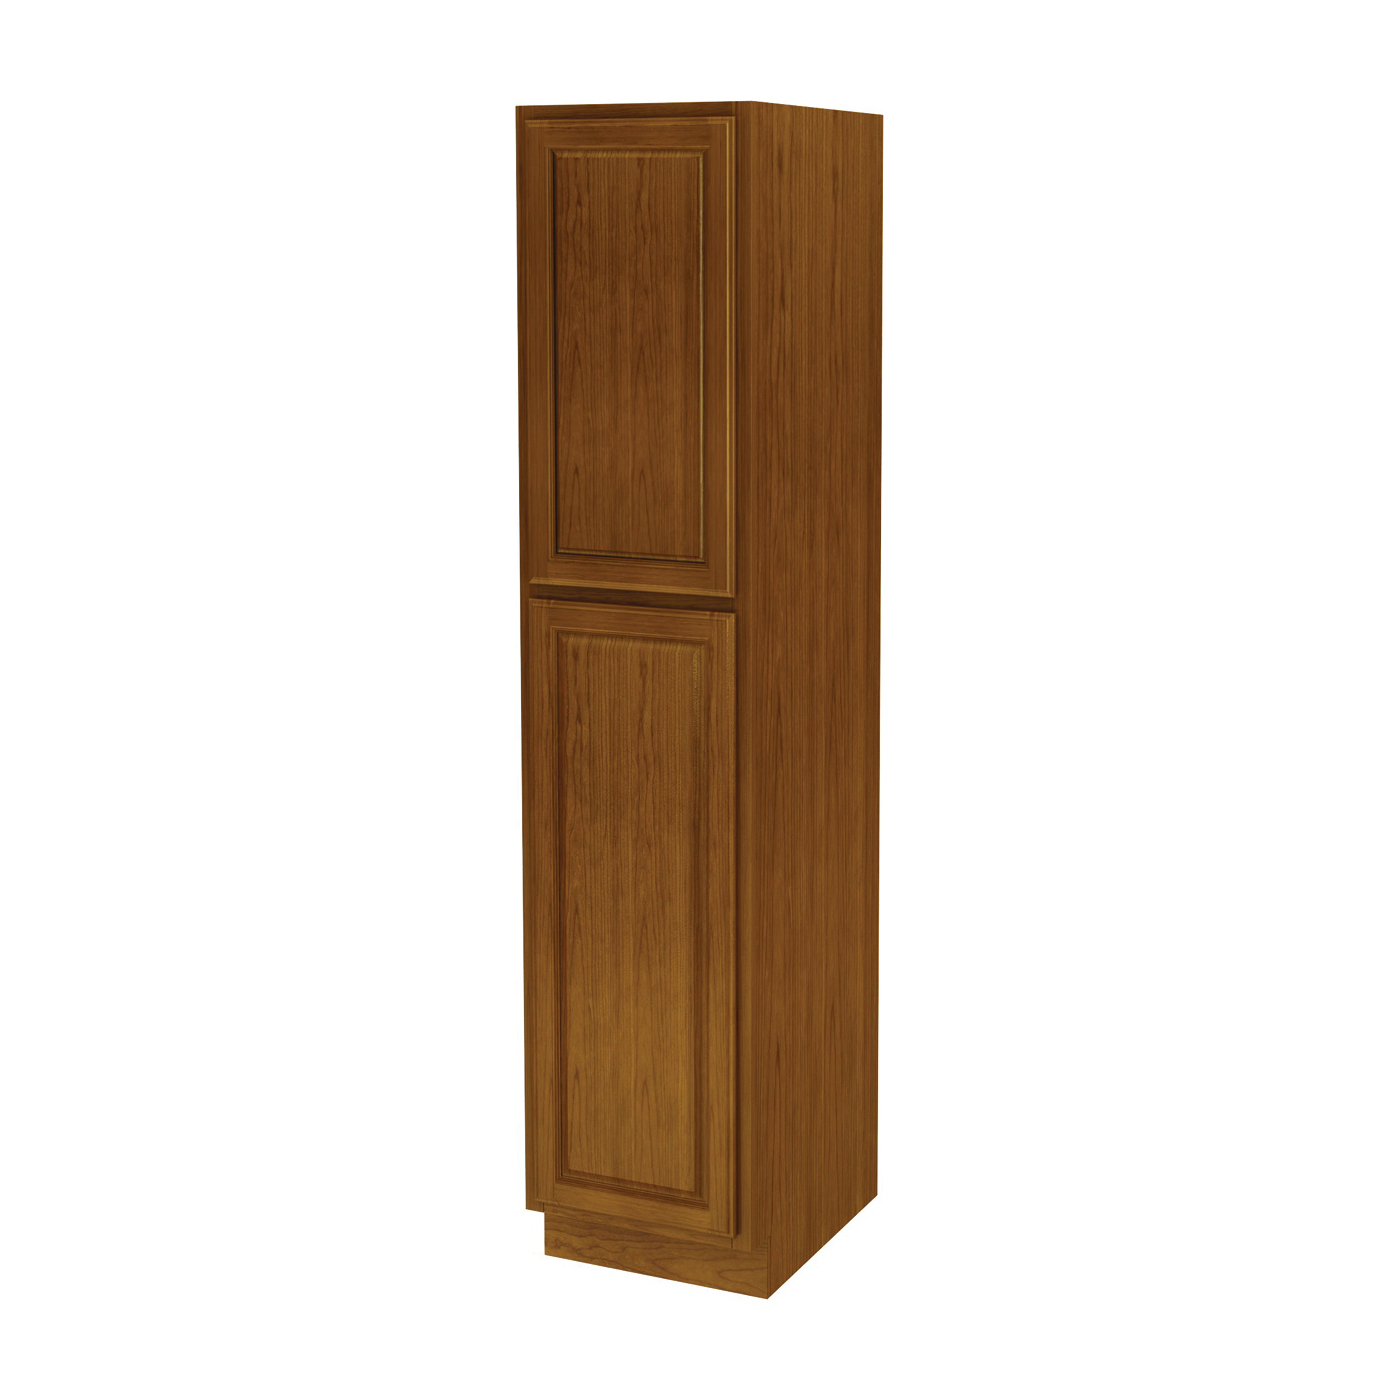 Picture of Sunco Randolph WP1884RT/A Kitchen Cabinet, 18 in OAW, 24 in OAD, 84 in OAH, Wood, Amber, 2-Shelf